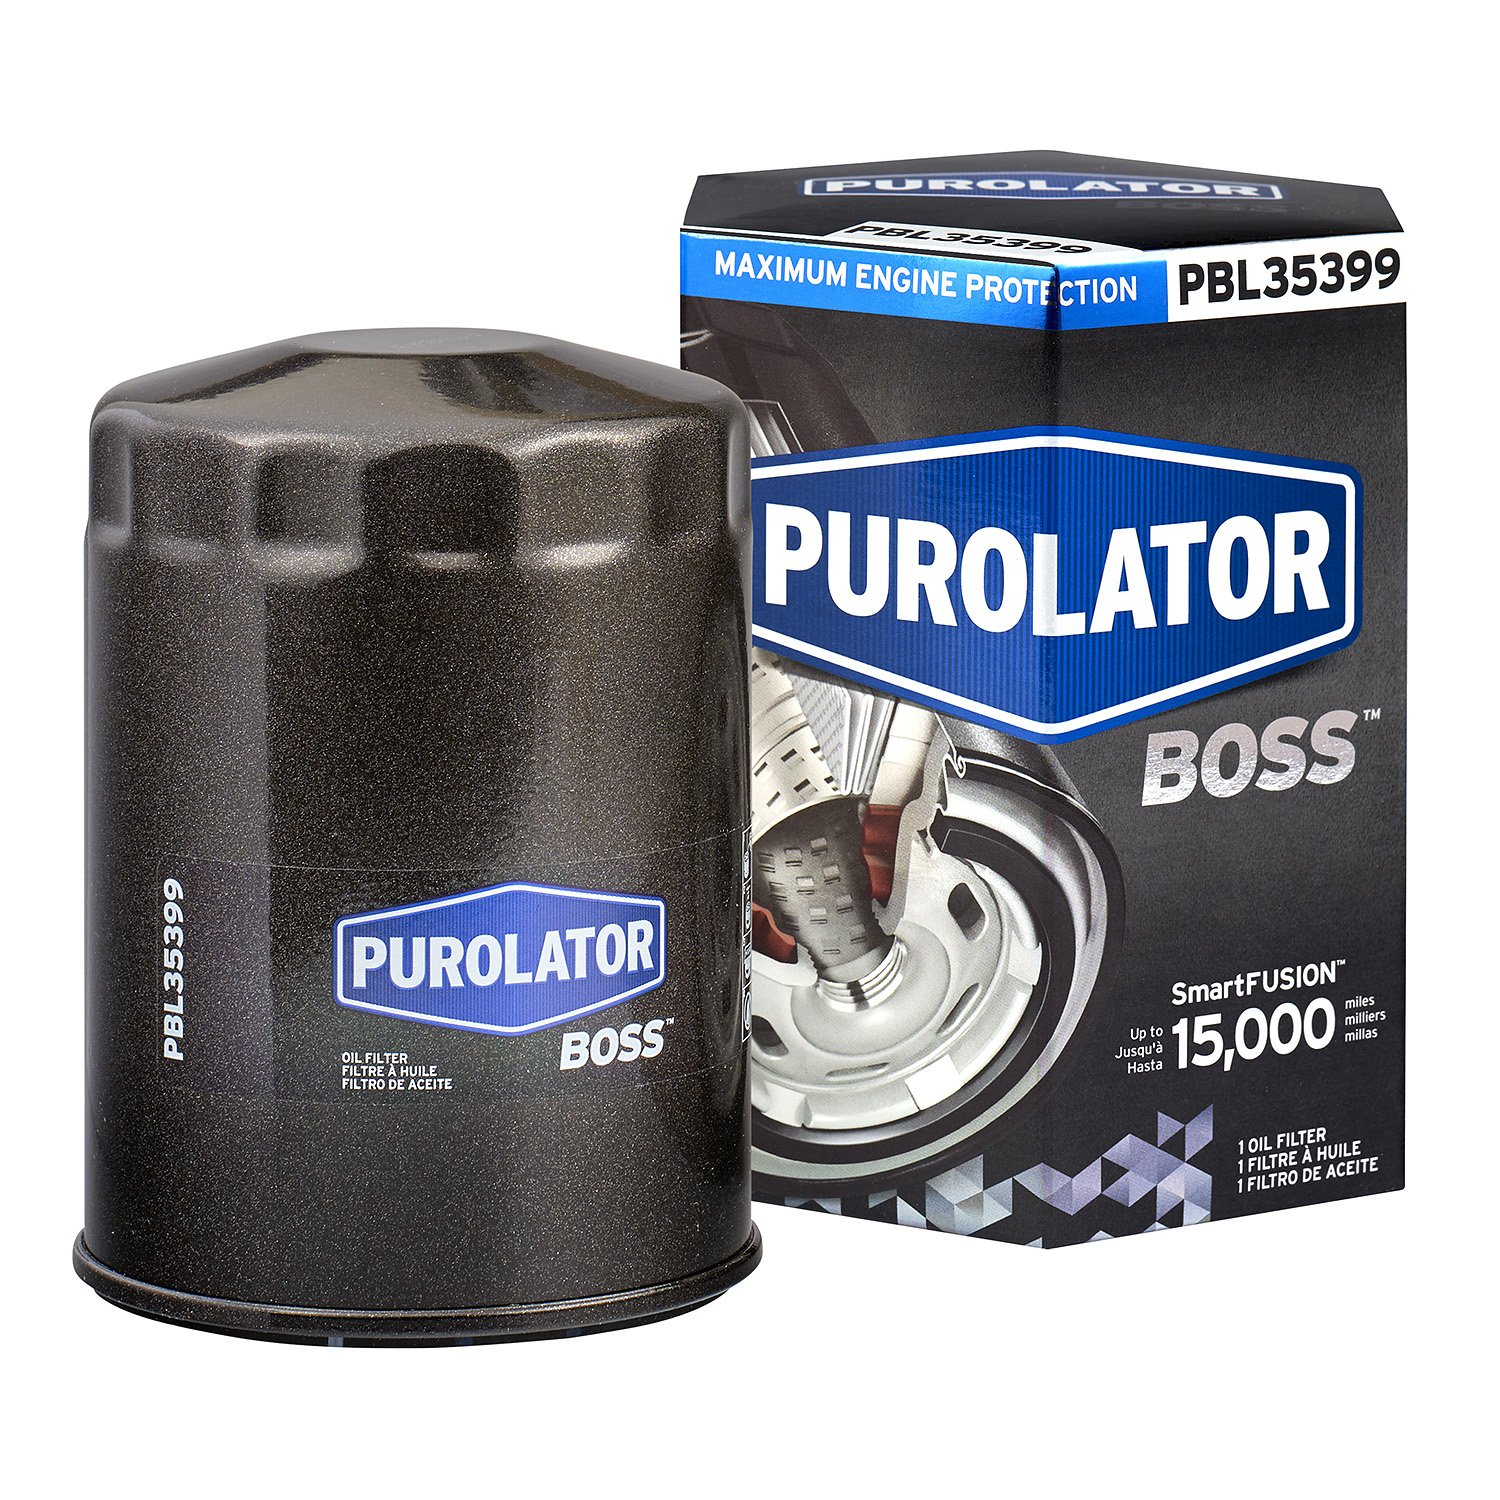 Amazon.com: Purolator PBL35399 PurolatorBOSS Premium Oil Filter: Automotive